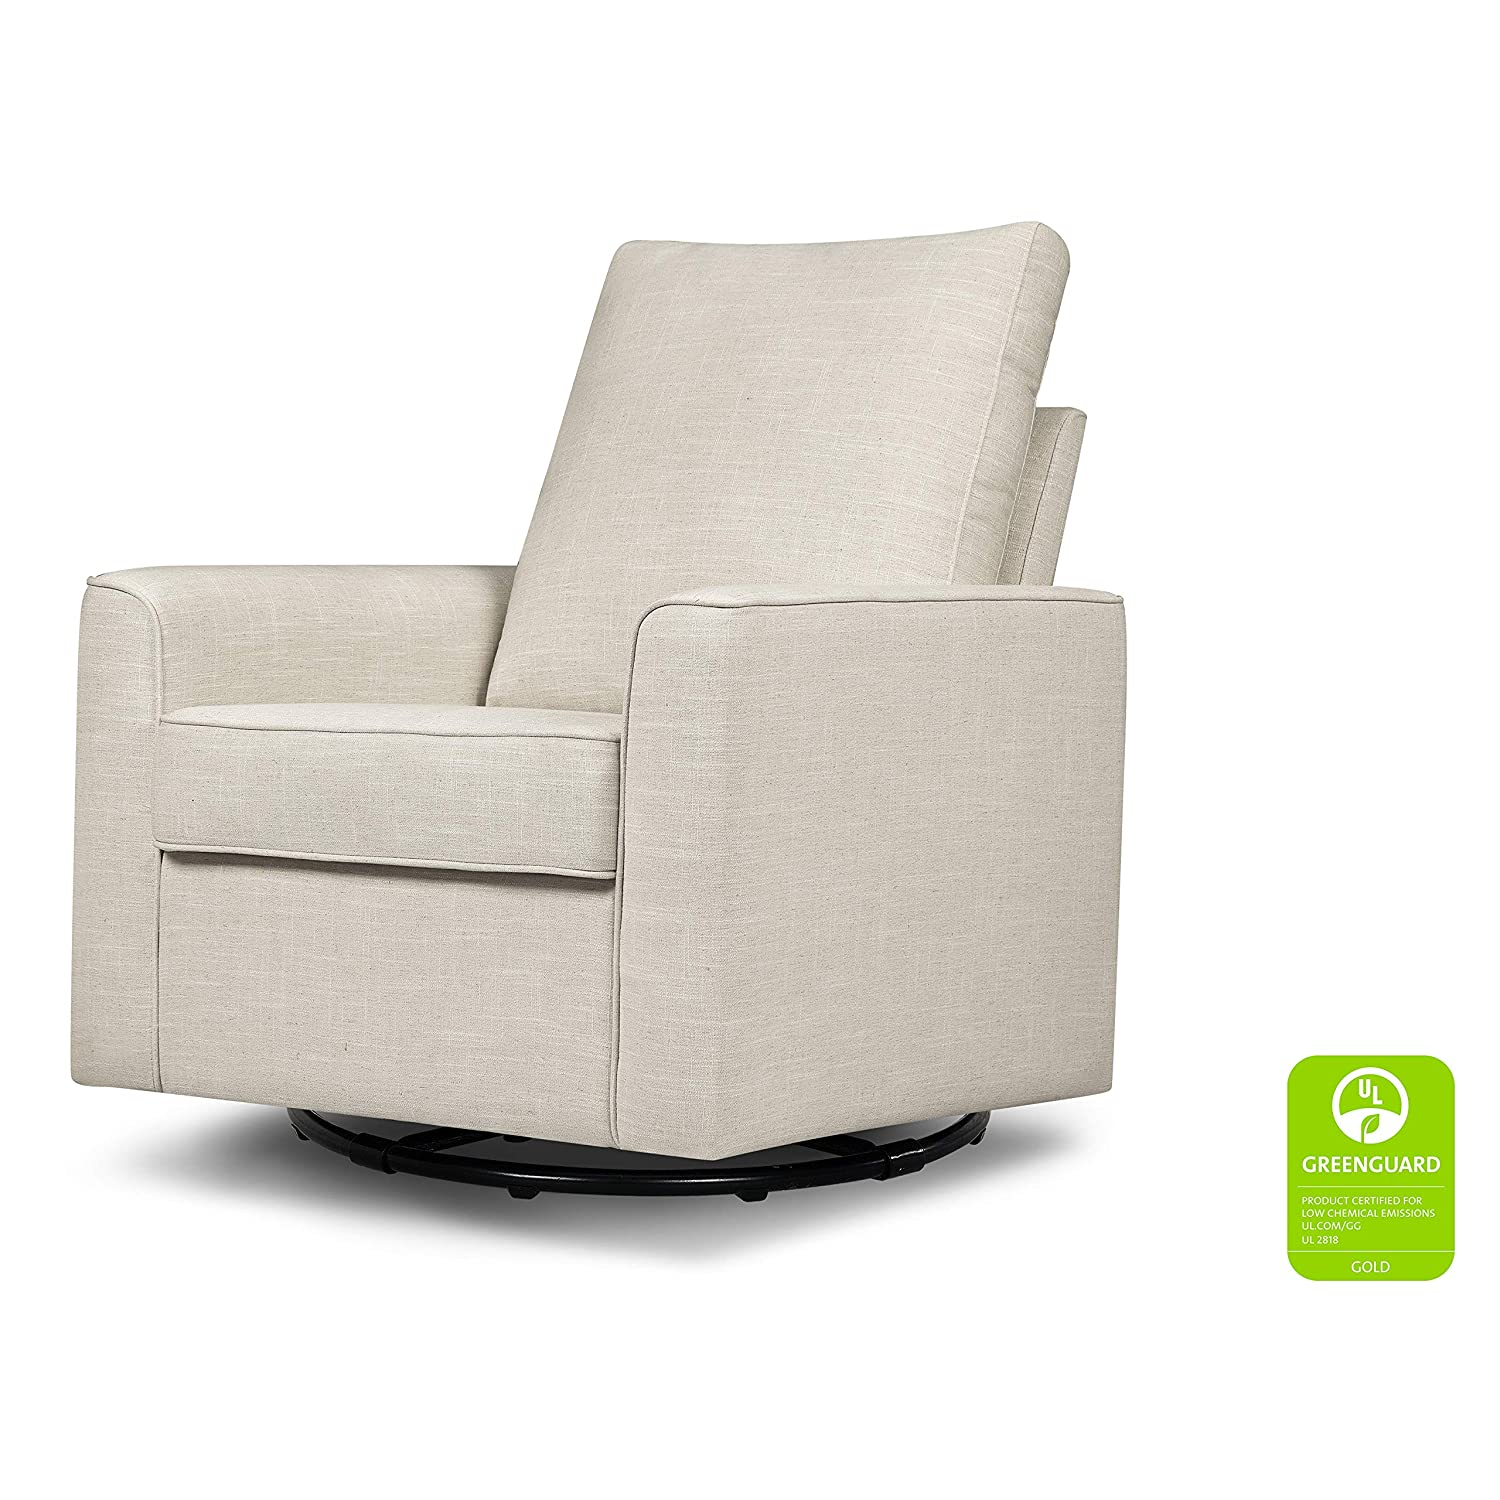 Million Dollar Baby Classic Alden Swivel Glider, White Linen